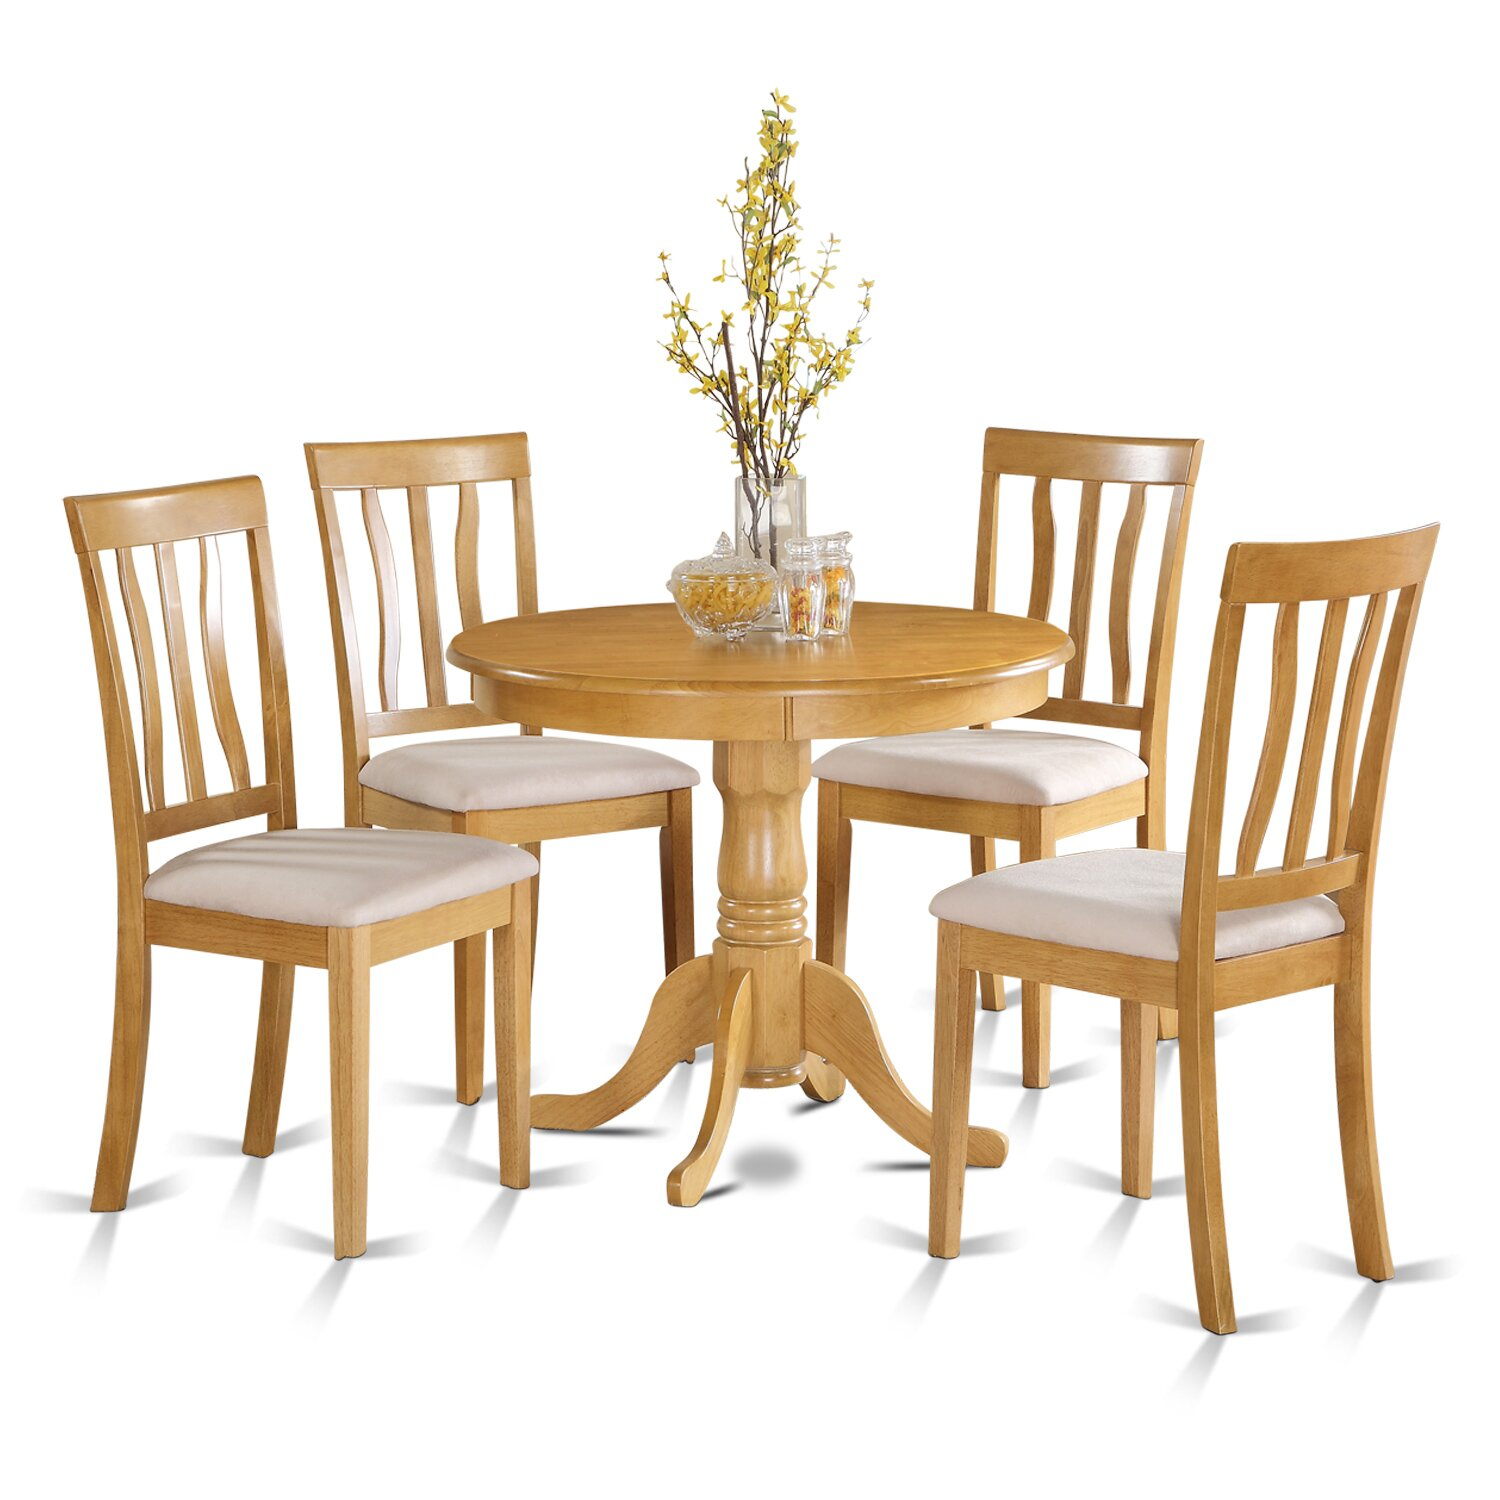 Wooden importers 5 piece dining set reviews wayfair for Small kitchen table sets for 4